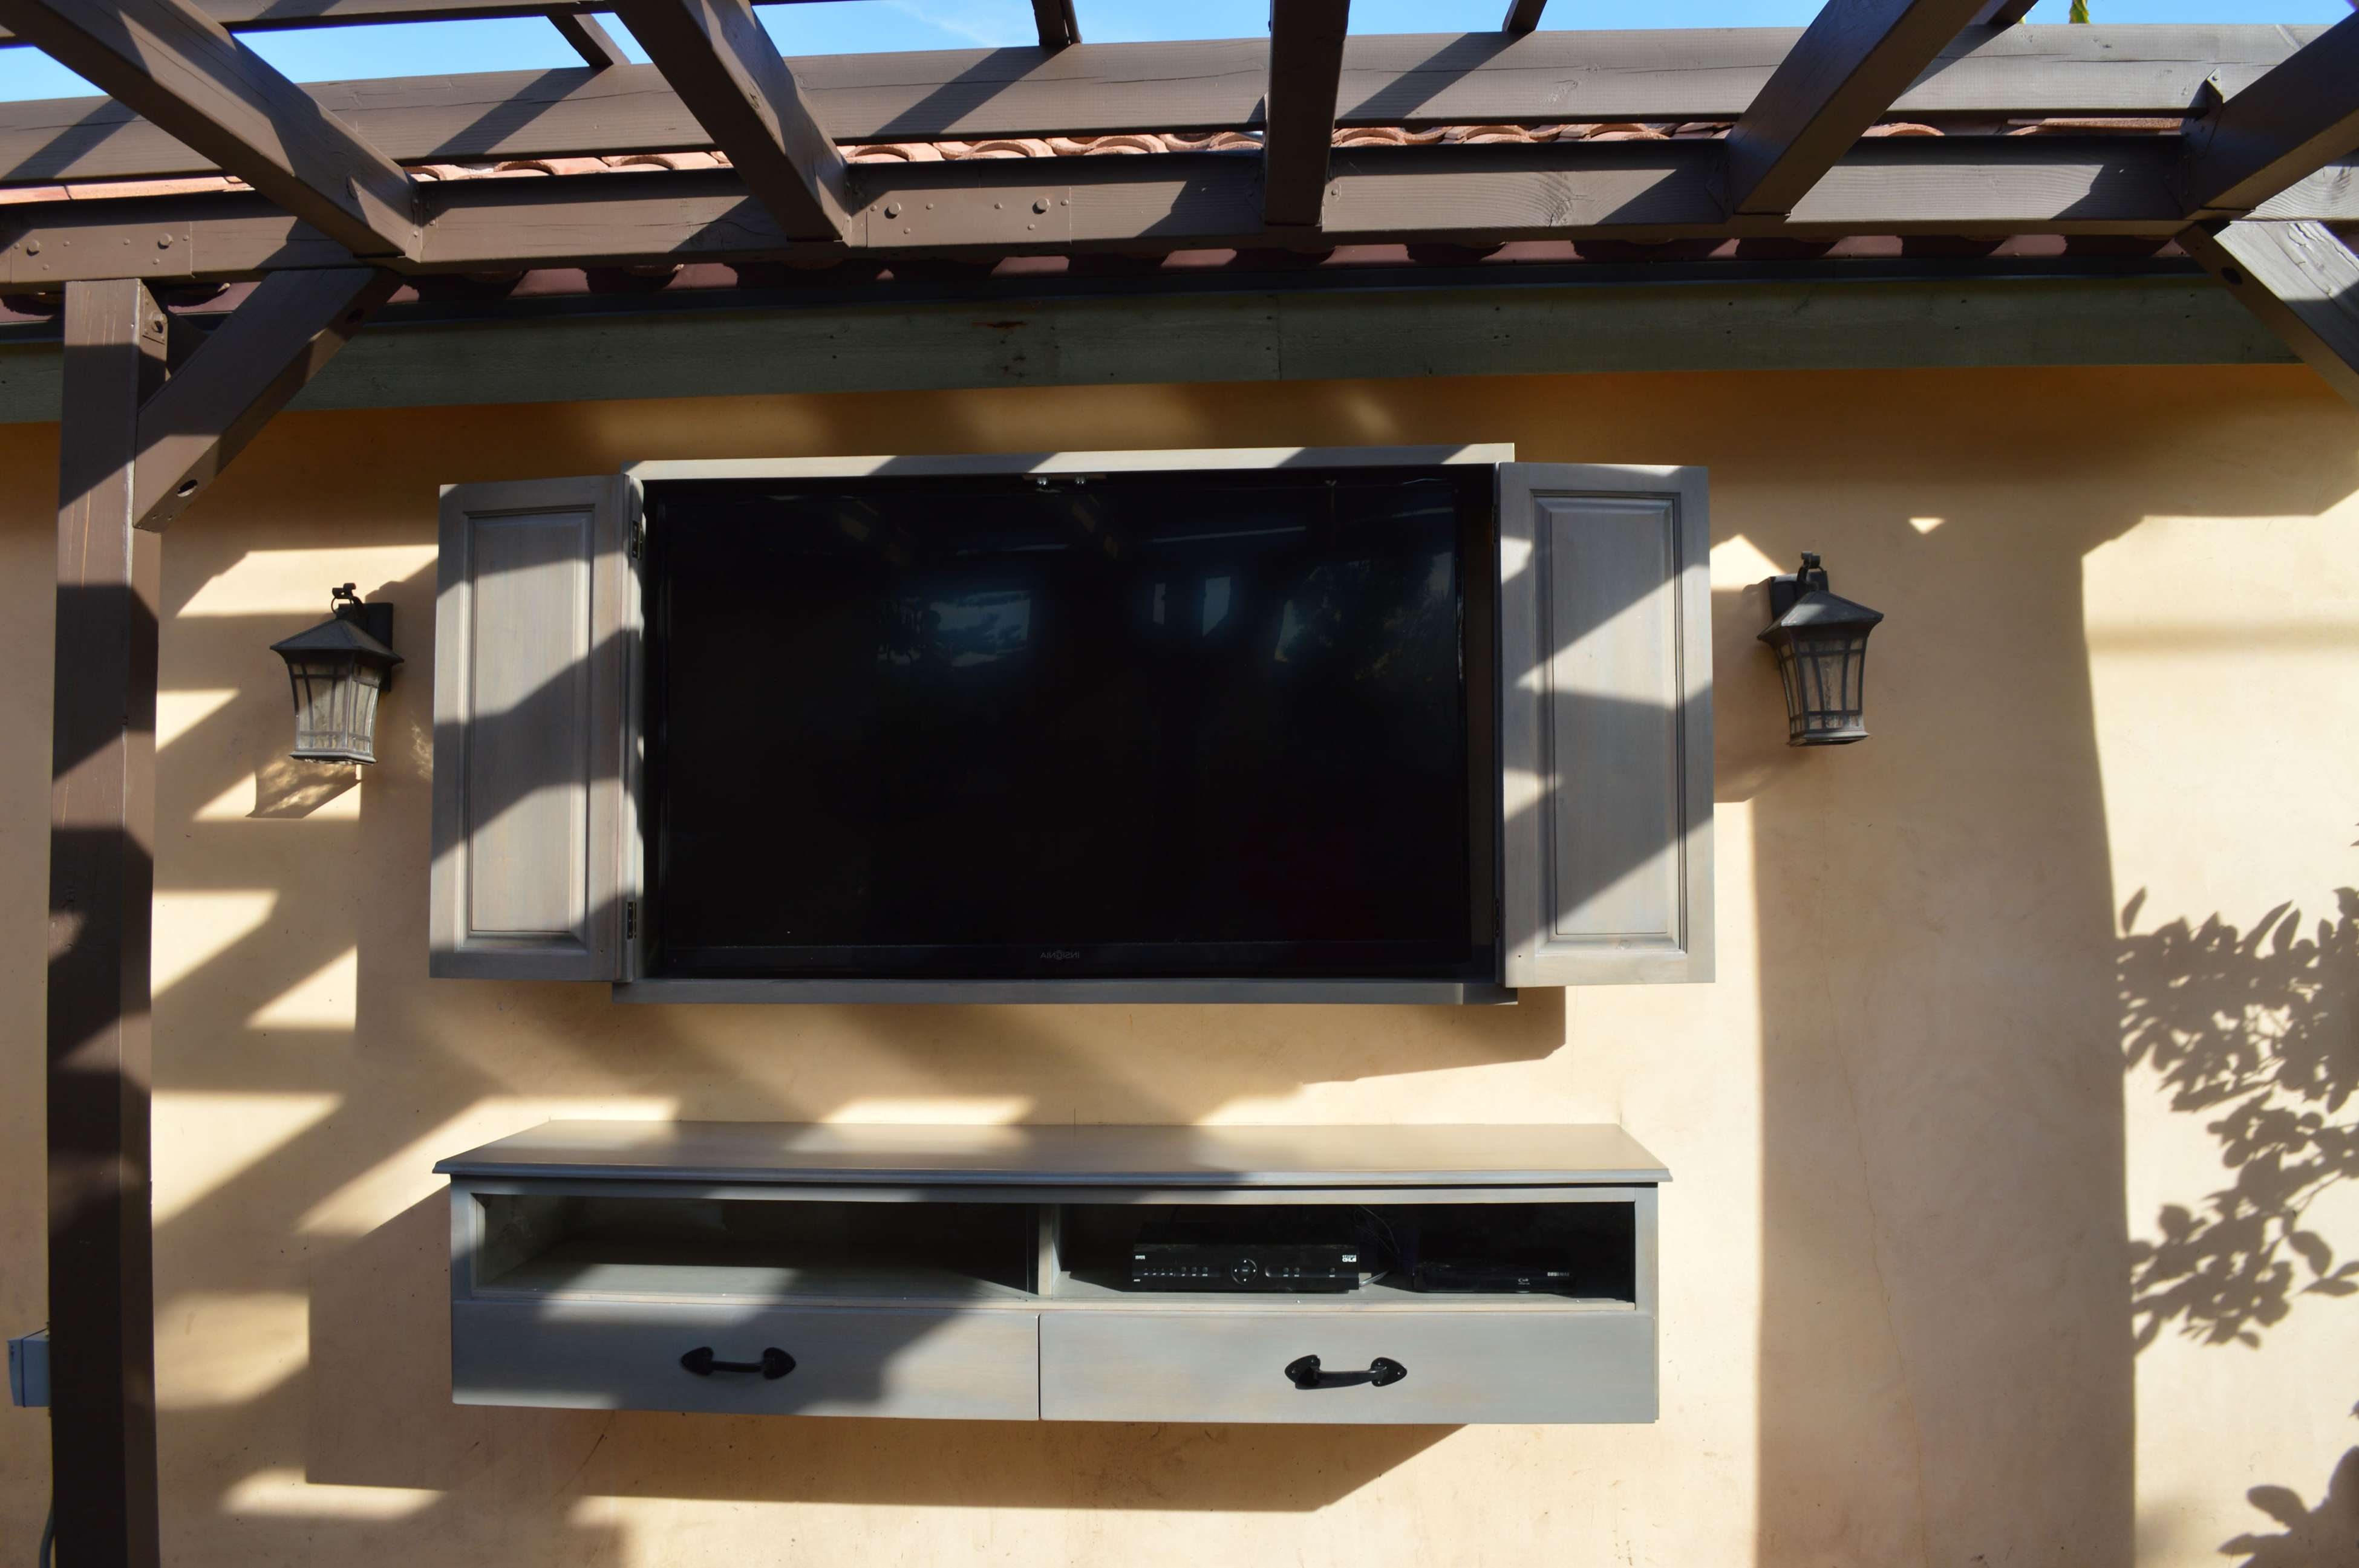 Rustic Outdoor Wall Mounted Tv Cabinets For Flat Screens With For Wall Mounted Tv Cabinets For Flat Screens With Doors (View 20 of 20)